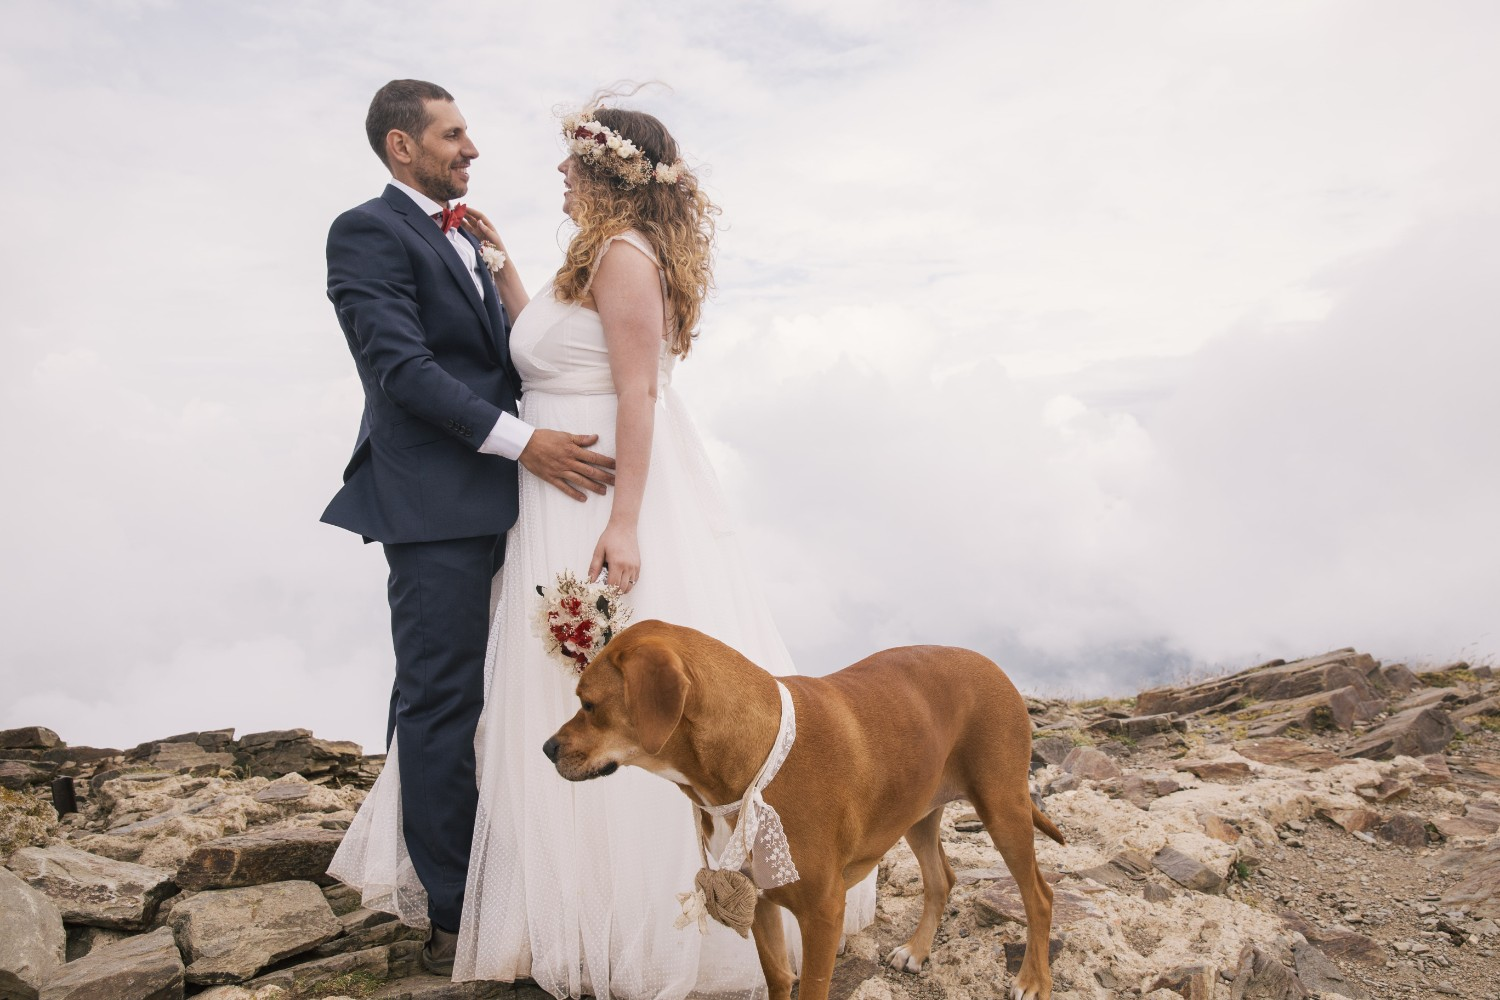 wedding with a dog in the mountains